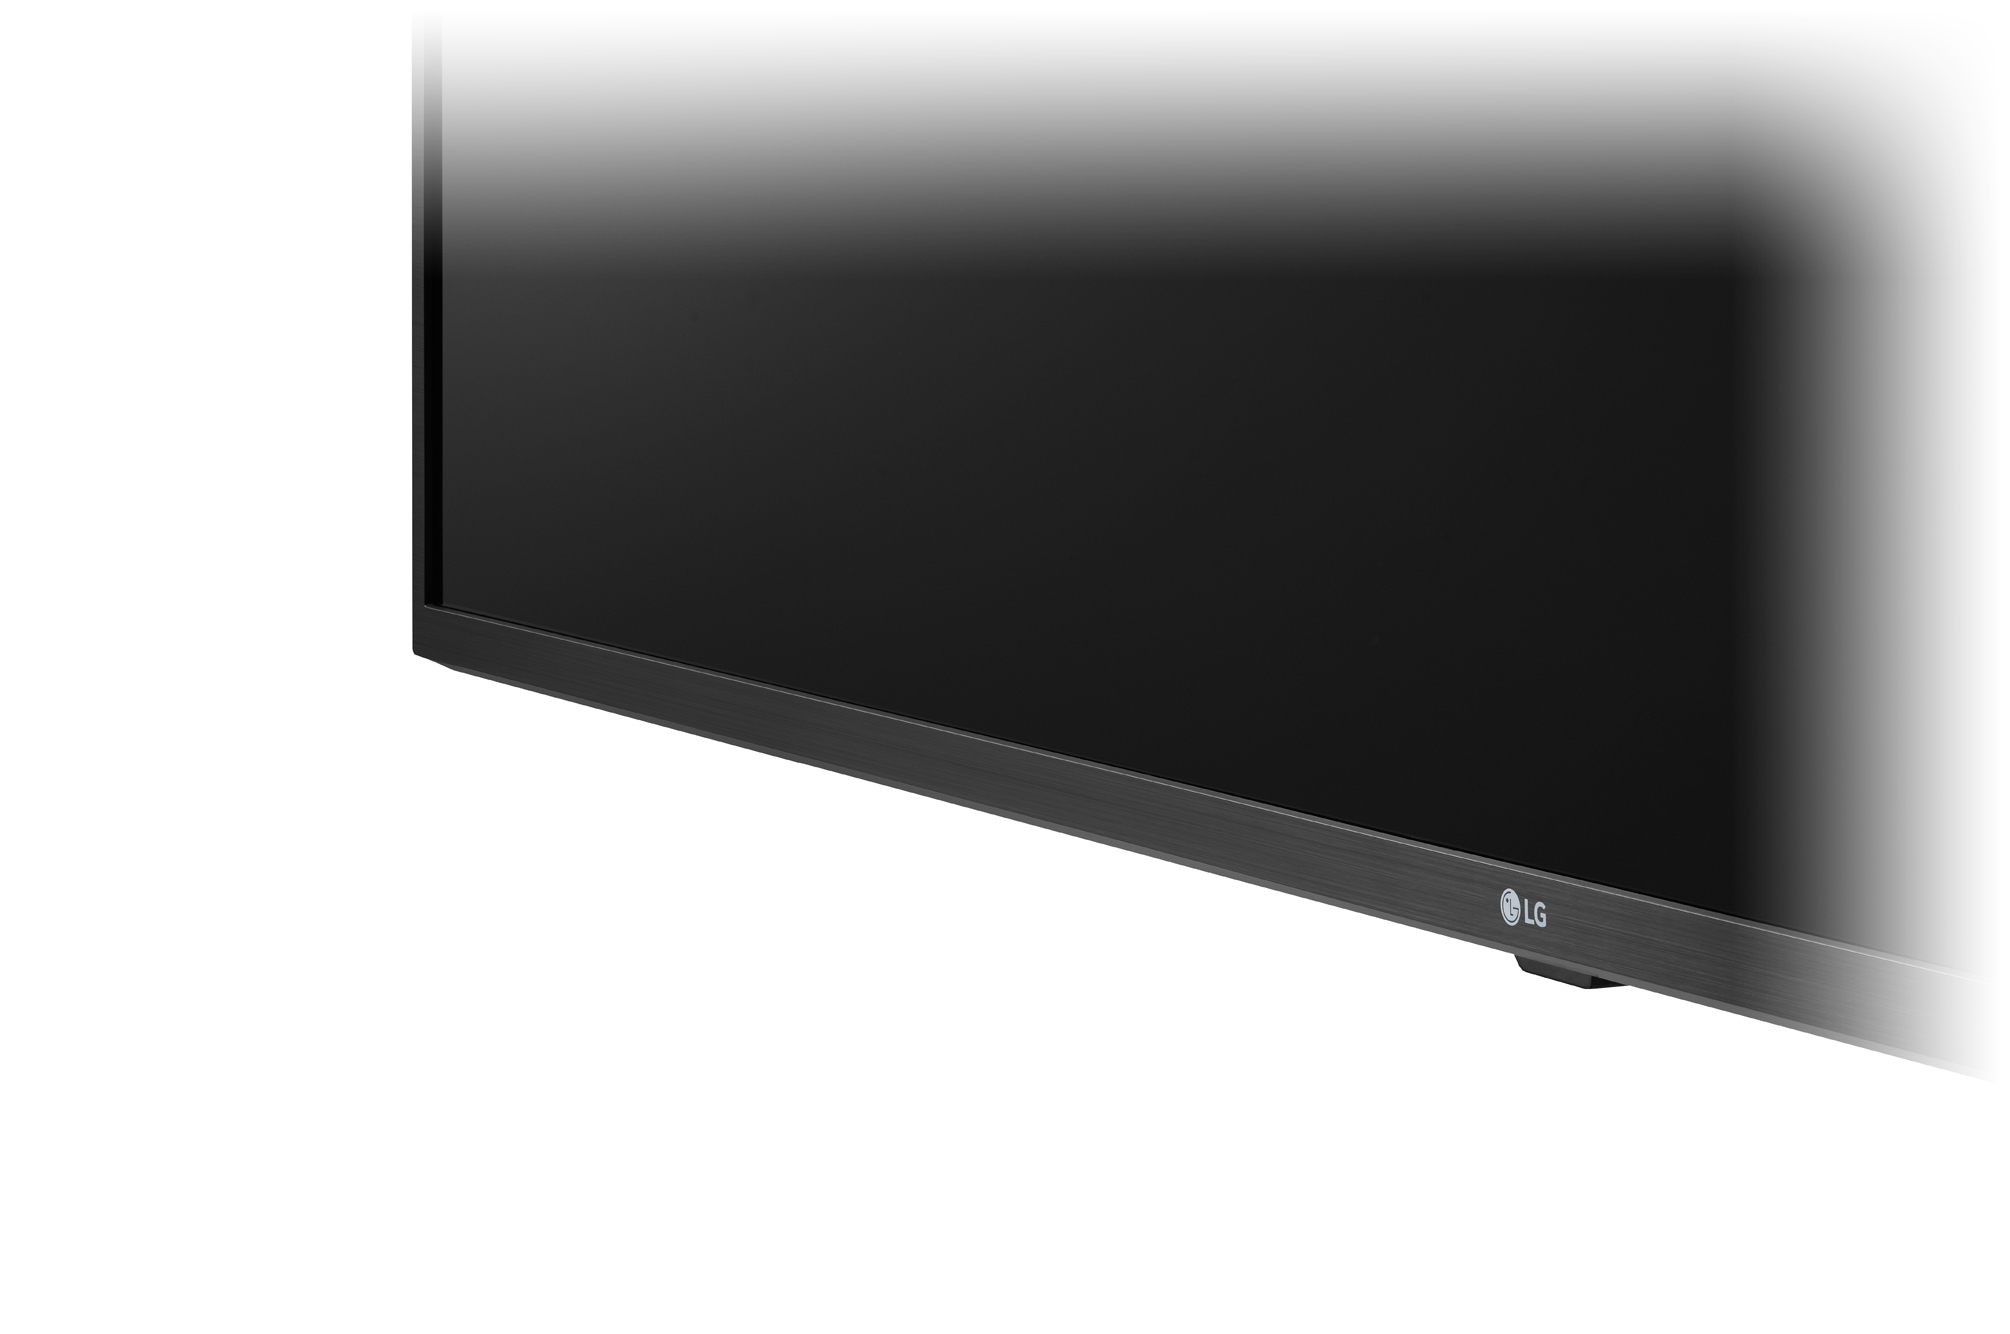 LG Smart TV Signage 55UT640S (EU) 10